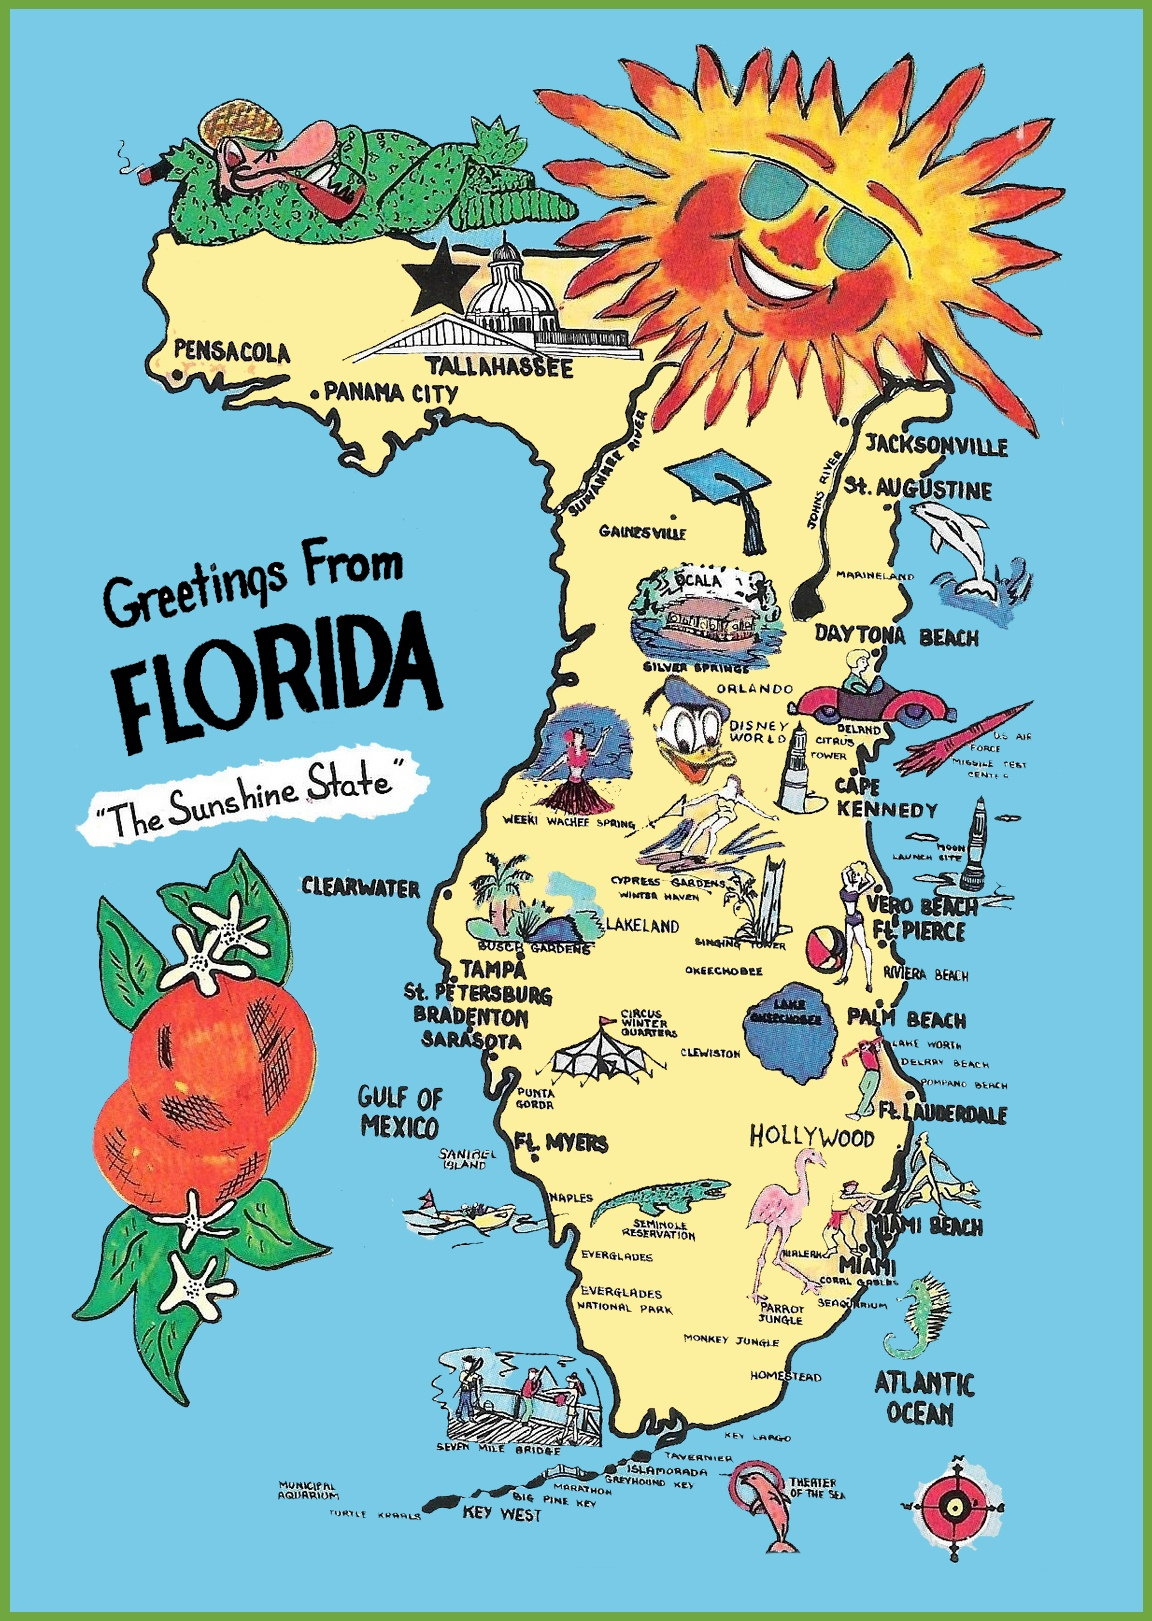 Map Of Florida Tourist Attractions   Download Them And Print - Florida Travel Guide Map